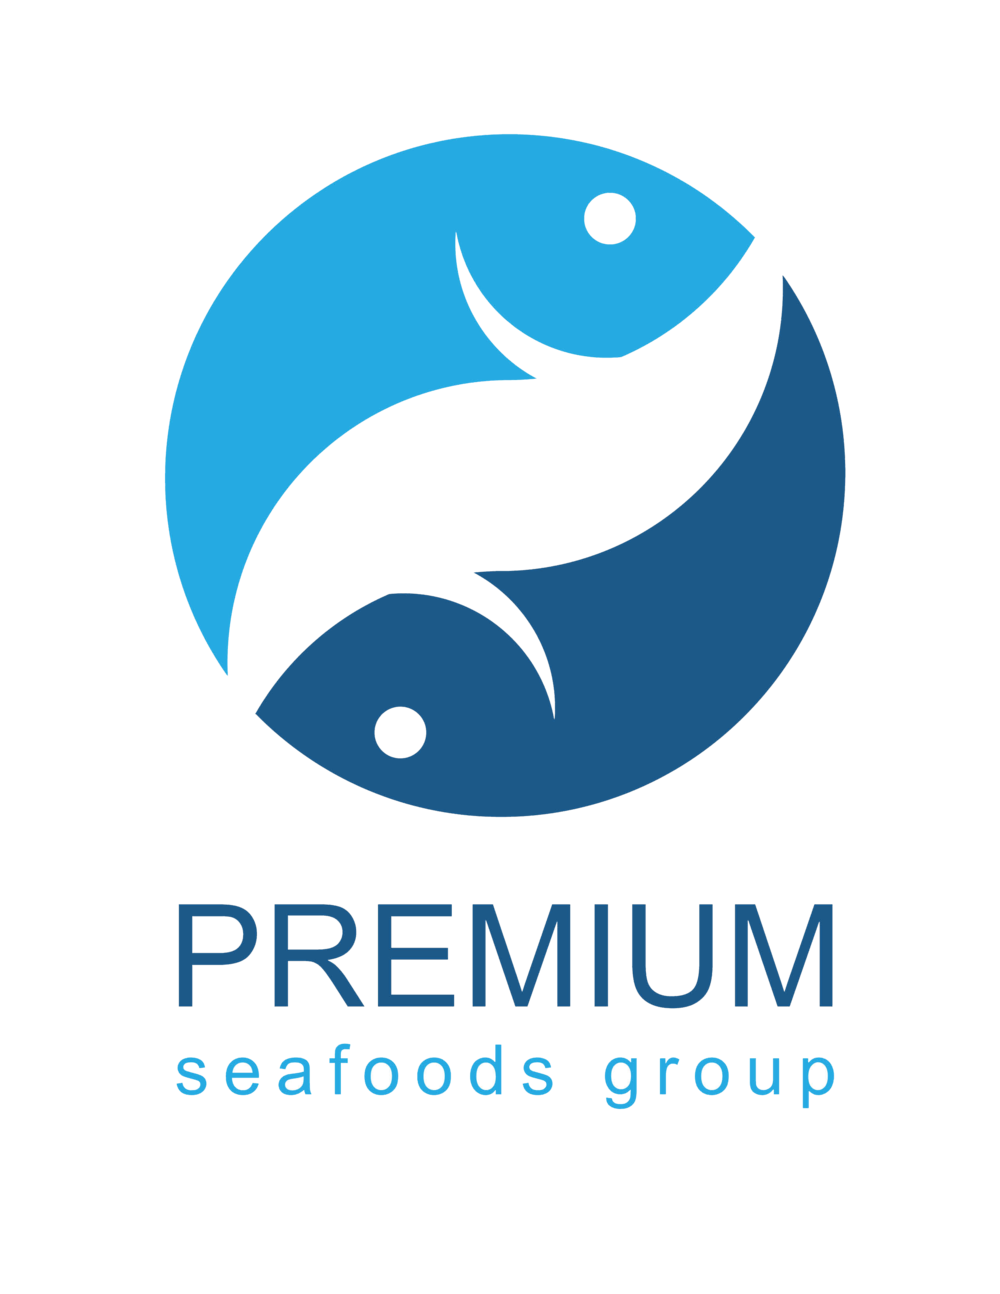 PREMIUM SEAFOODS GROUP LOGO - 2010 (3)[4462].png